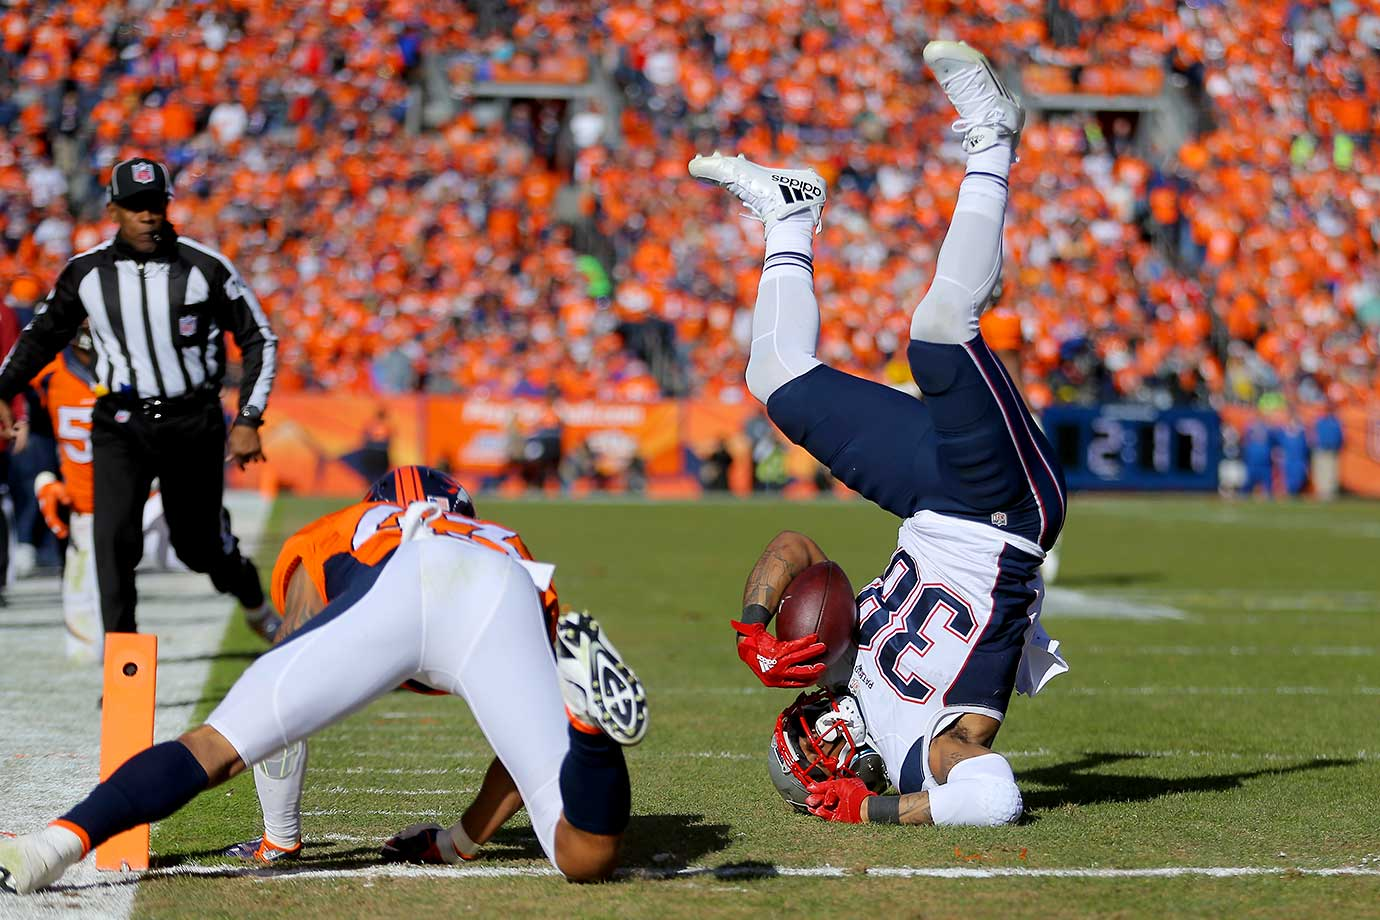 Brandon Bolden of the New England Patriots is tackled by T.J. Ward after a 20-yard run.